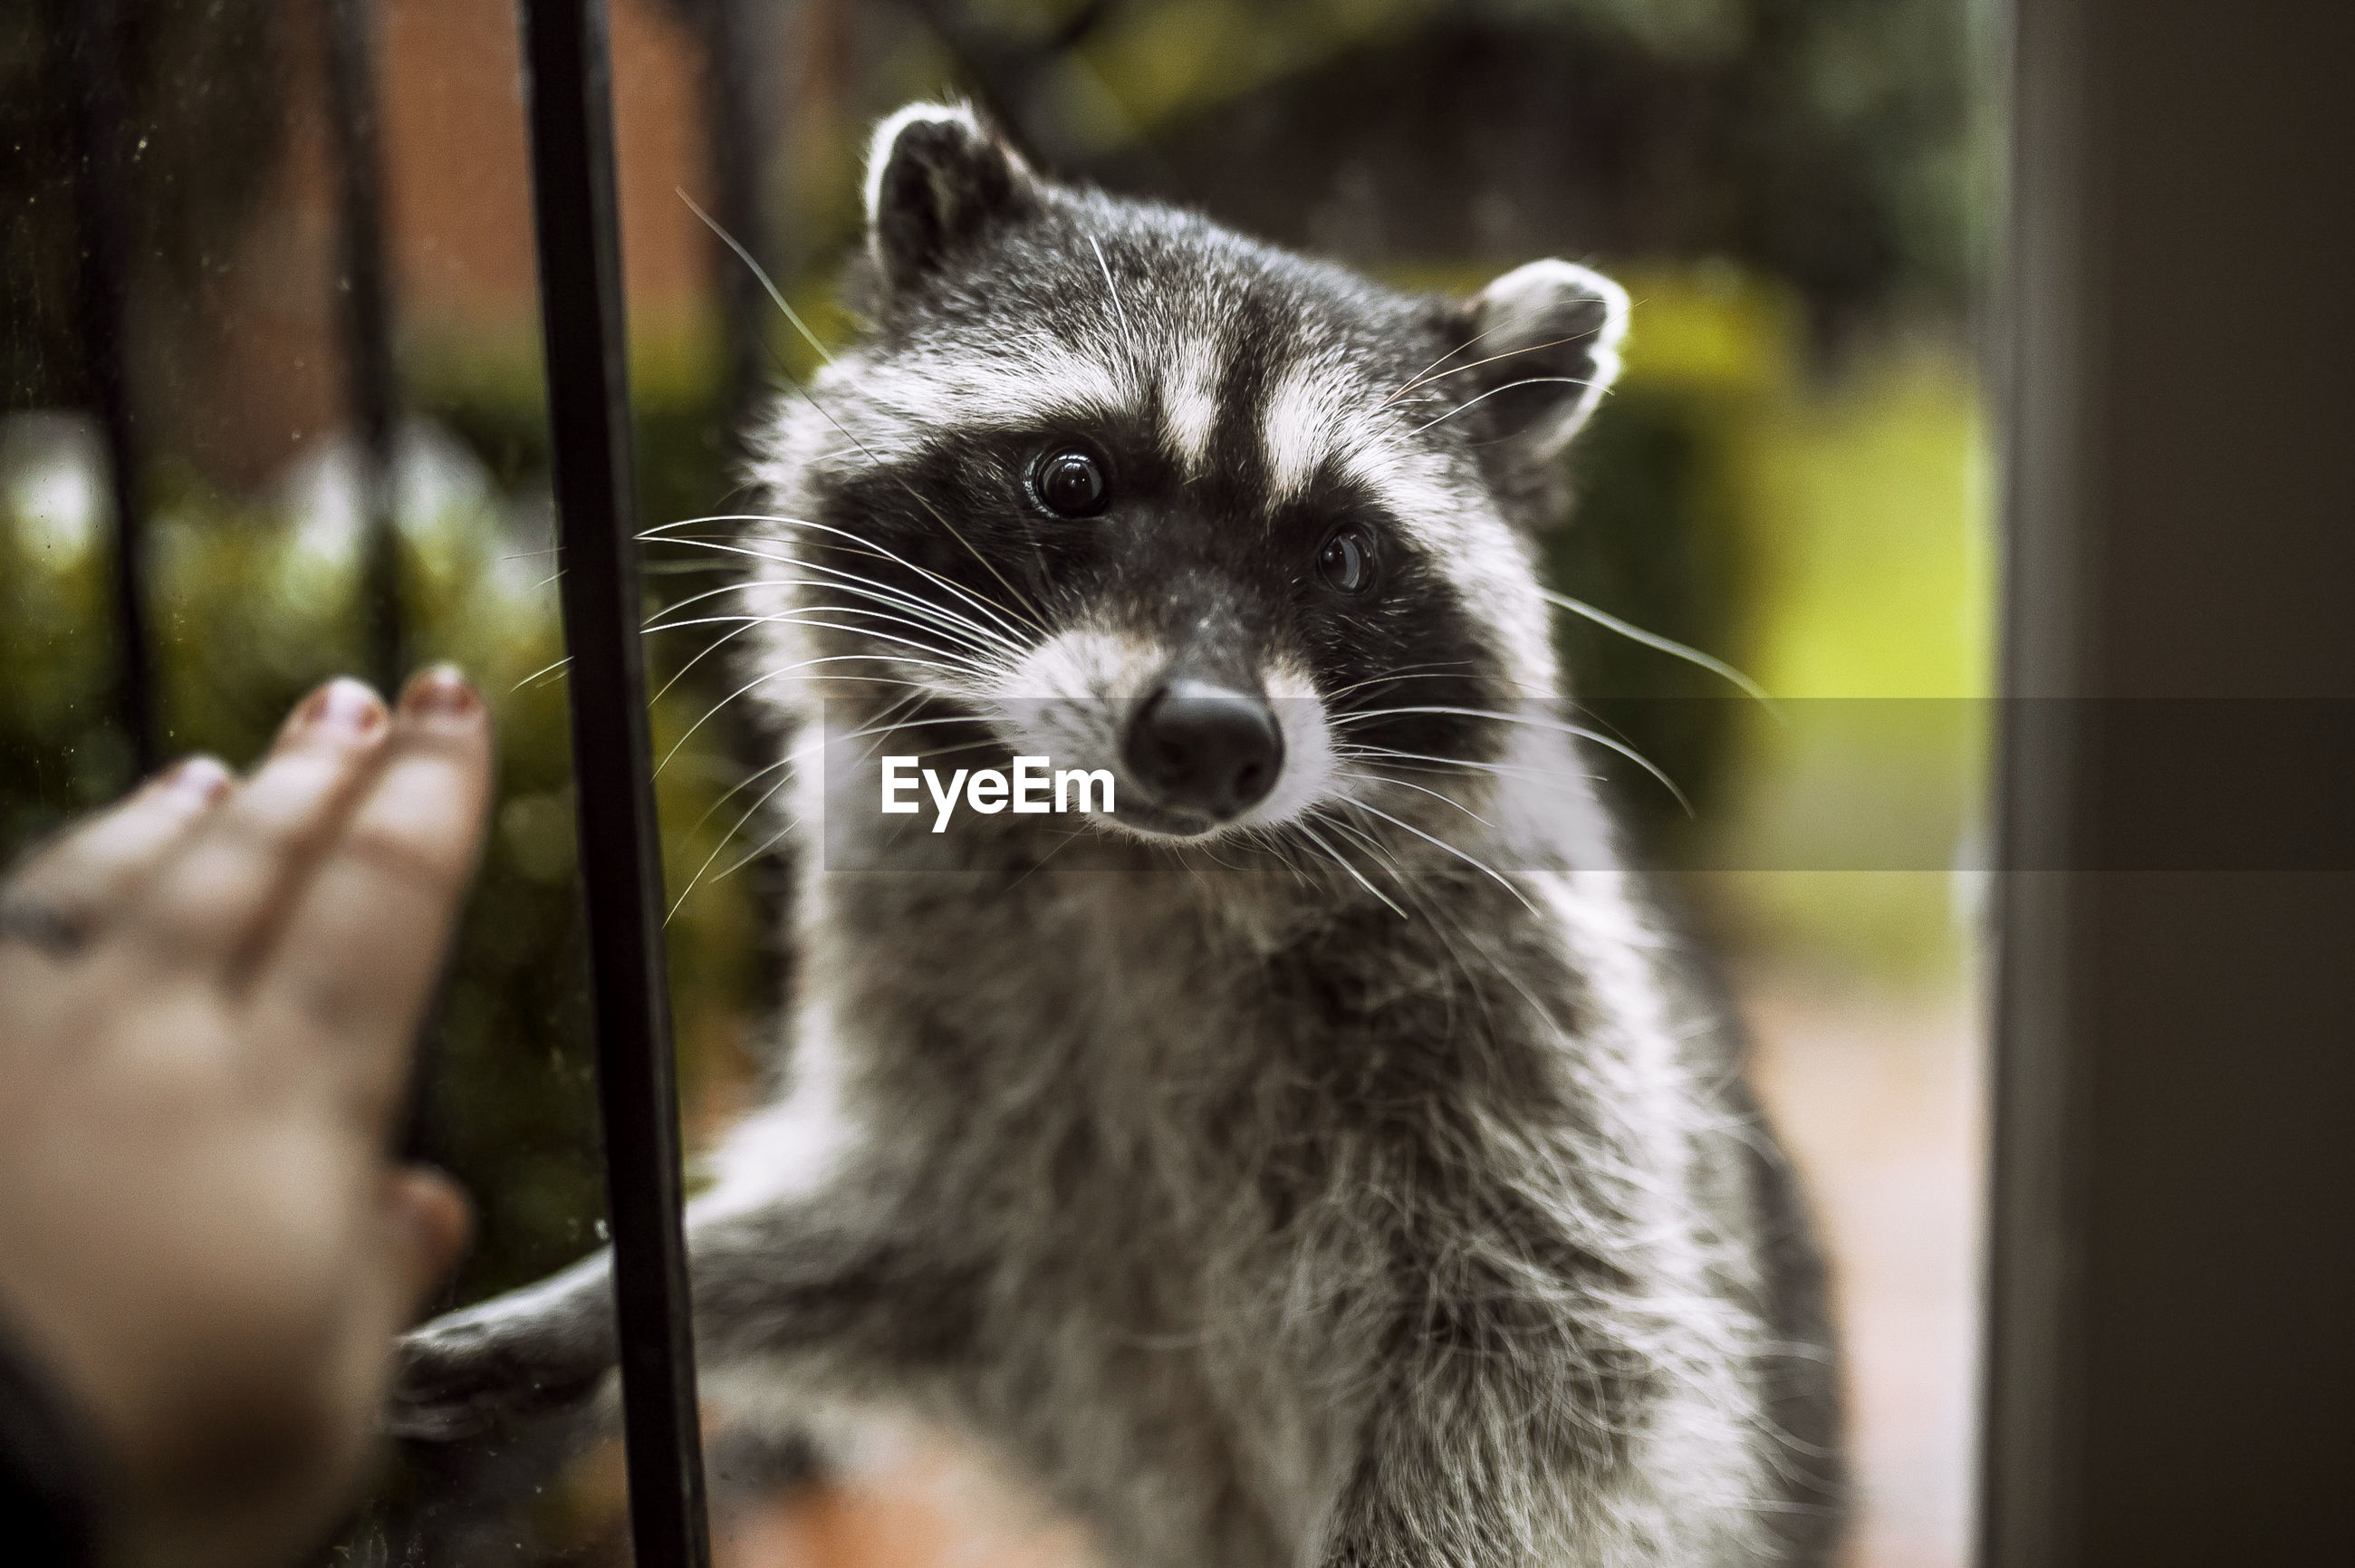 Cropped image of hand touching window against raccoon